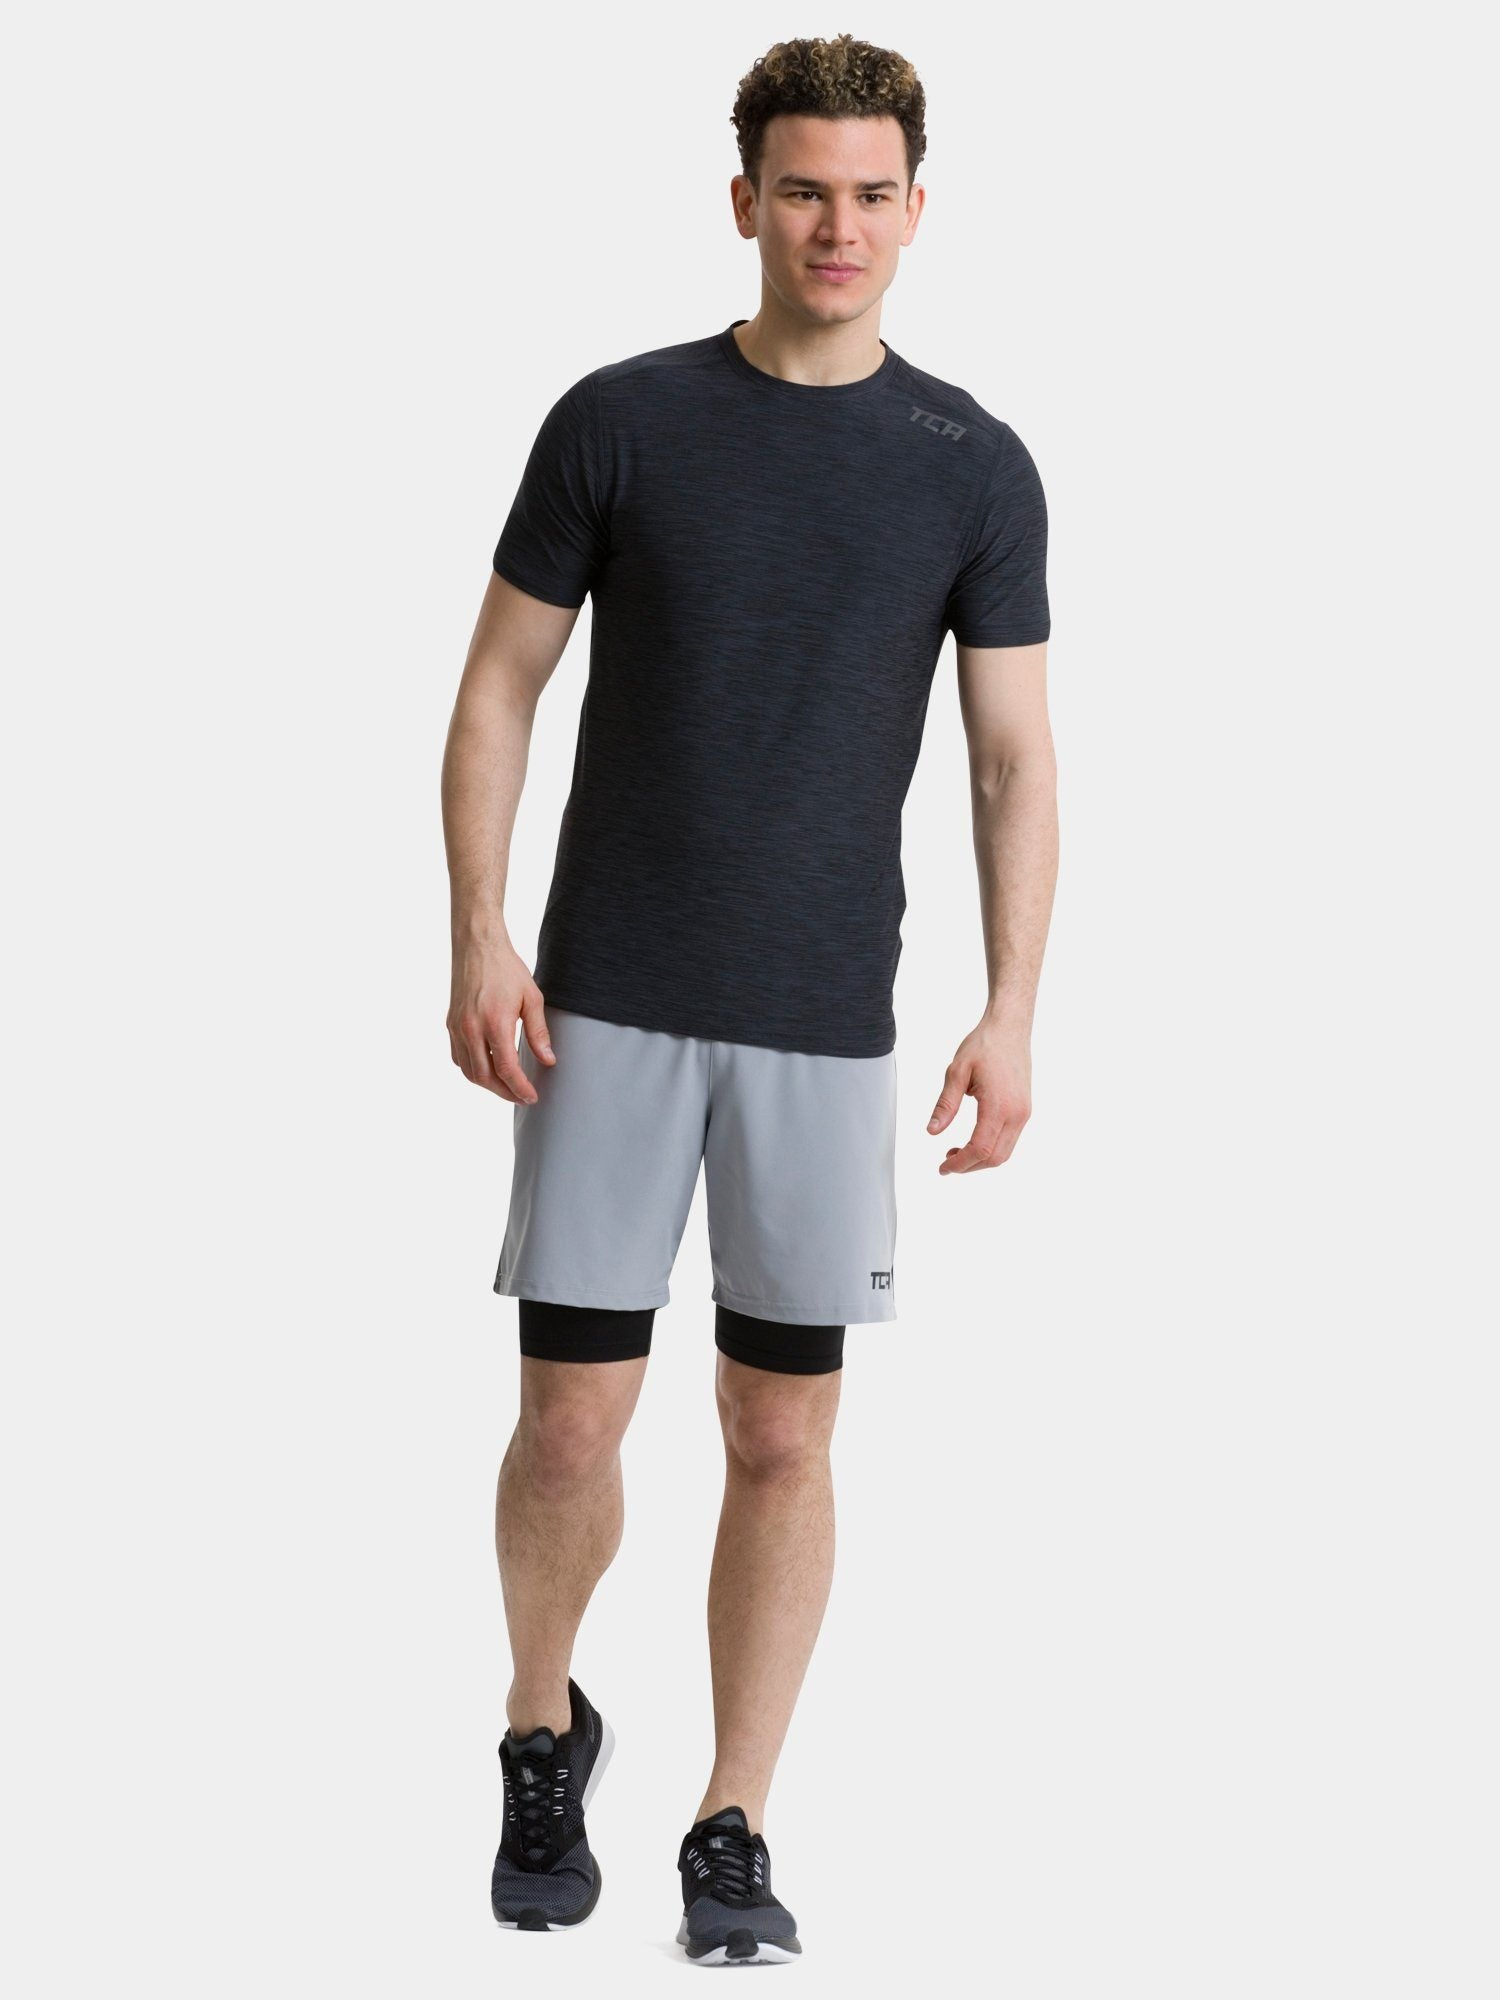 TCA Men's Galaxy Short Sleeve Gym Top - BLack